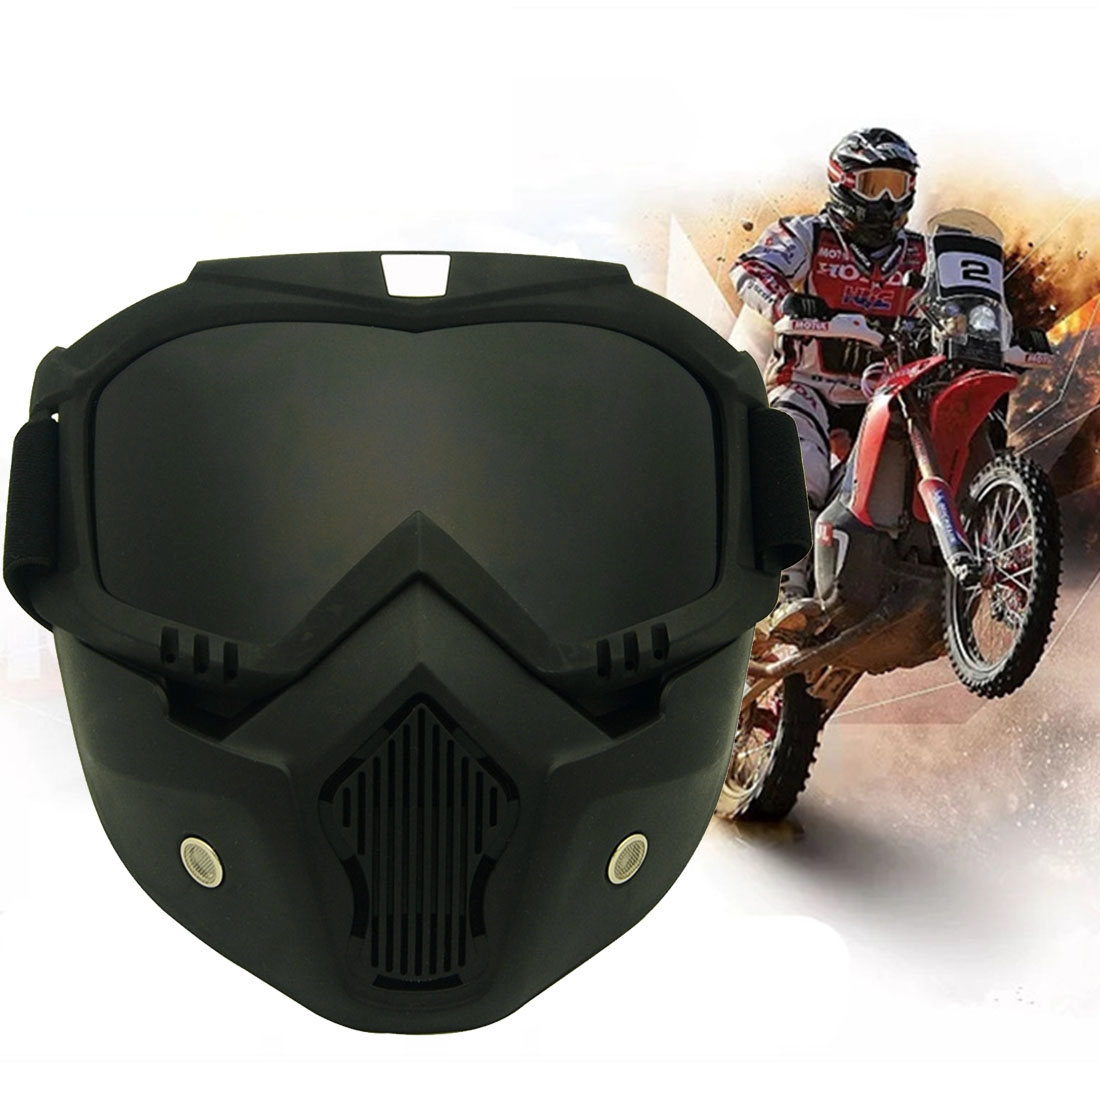 Motorcycle Off-road Helmet Mask Detachable Windproof Goggles Glasses (Grey)